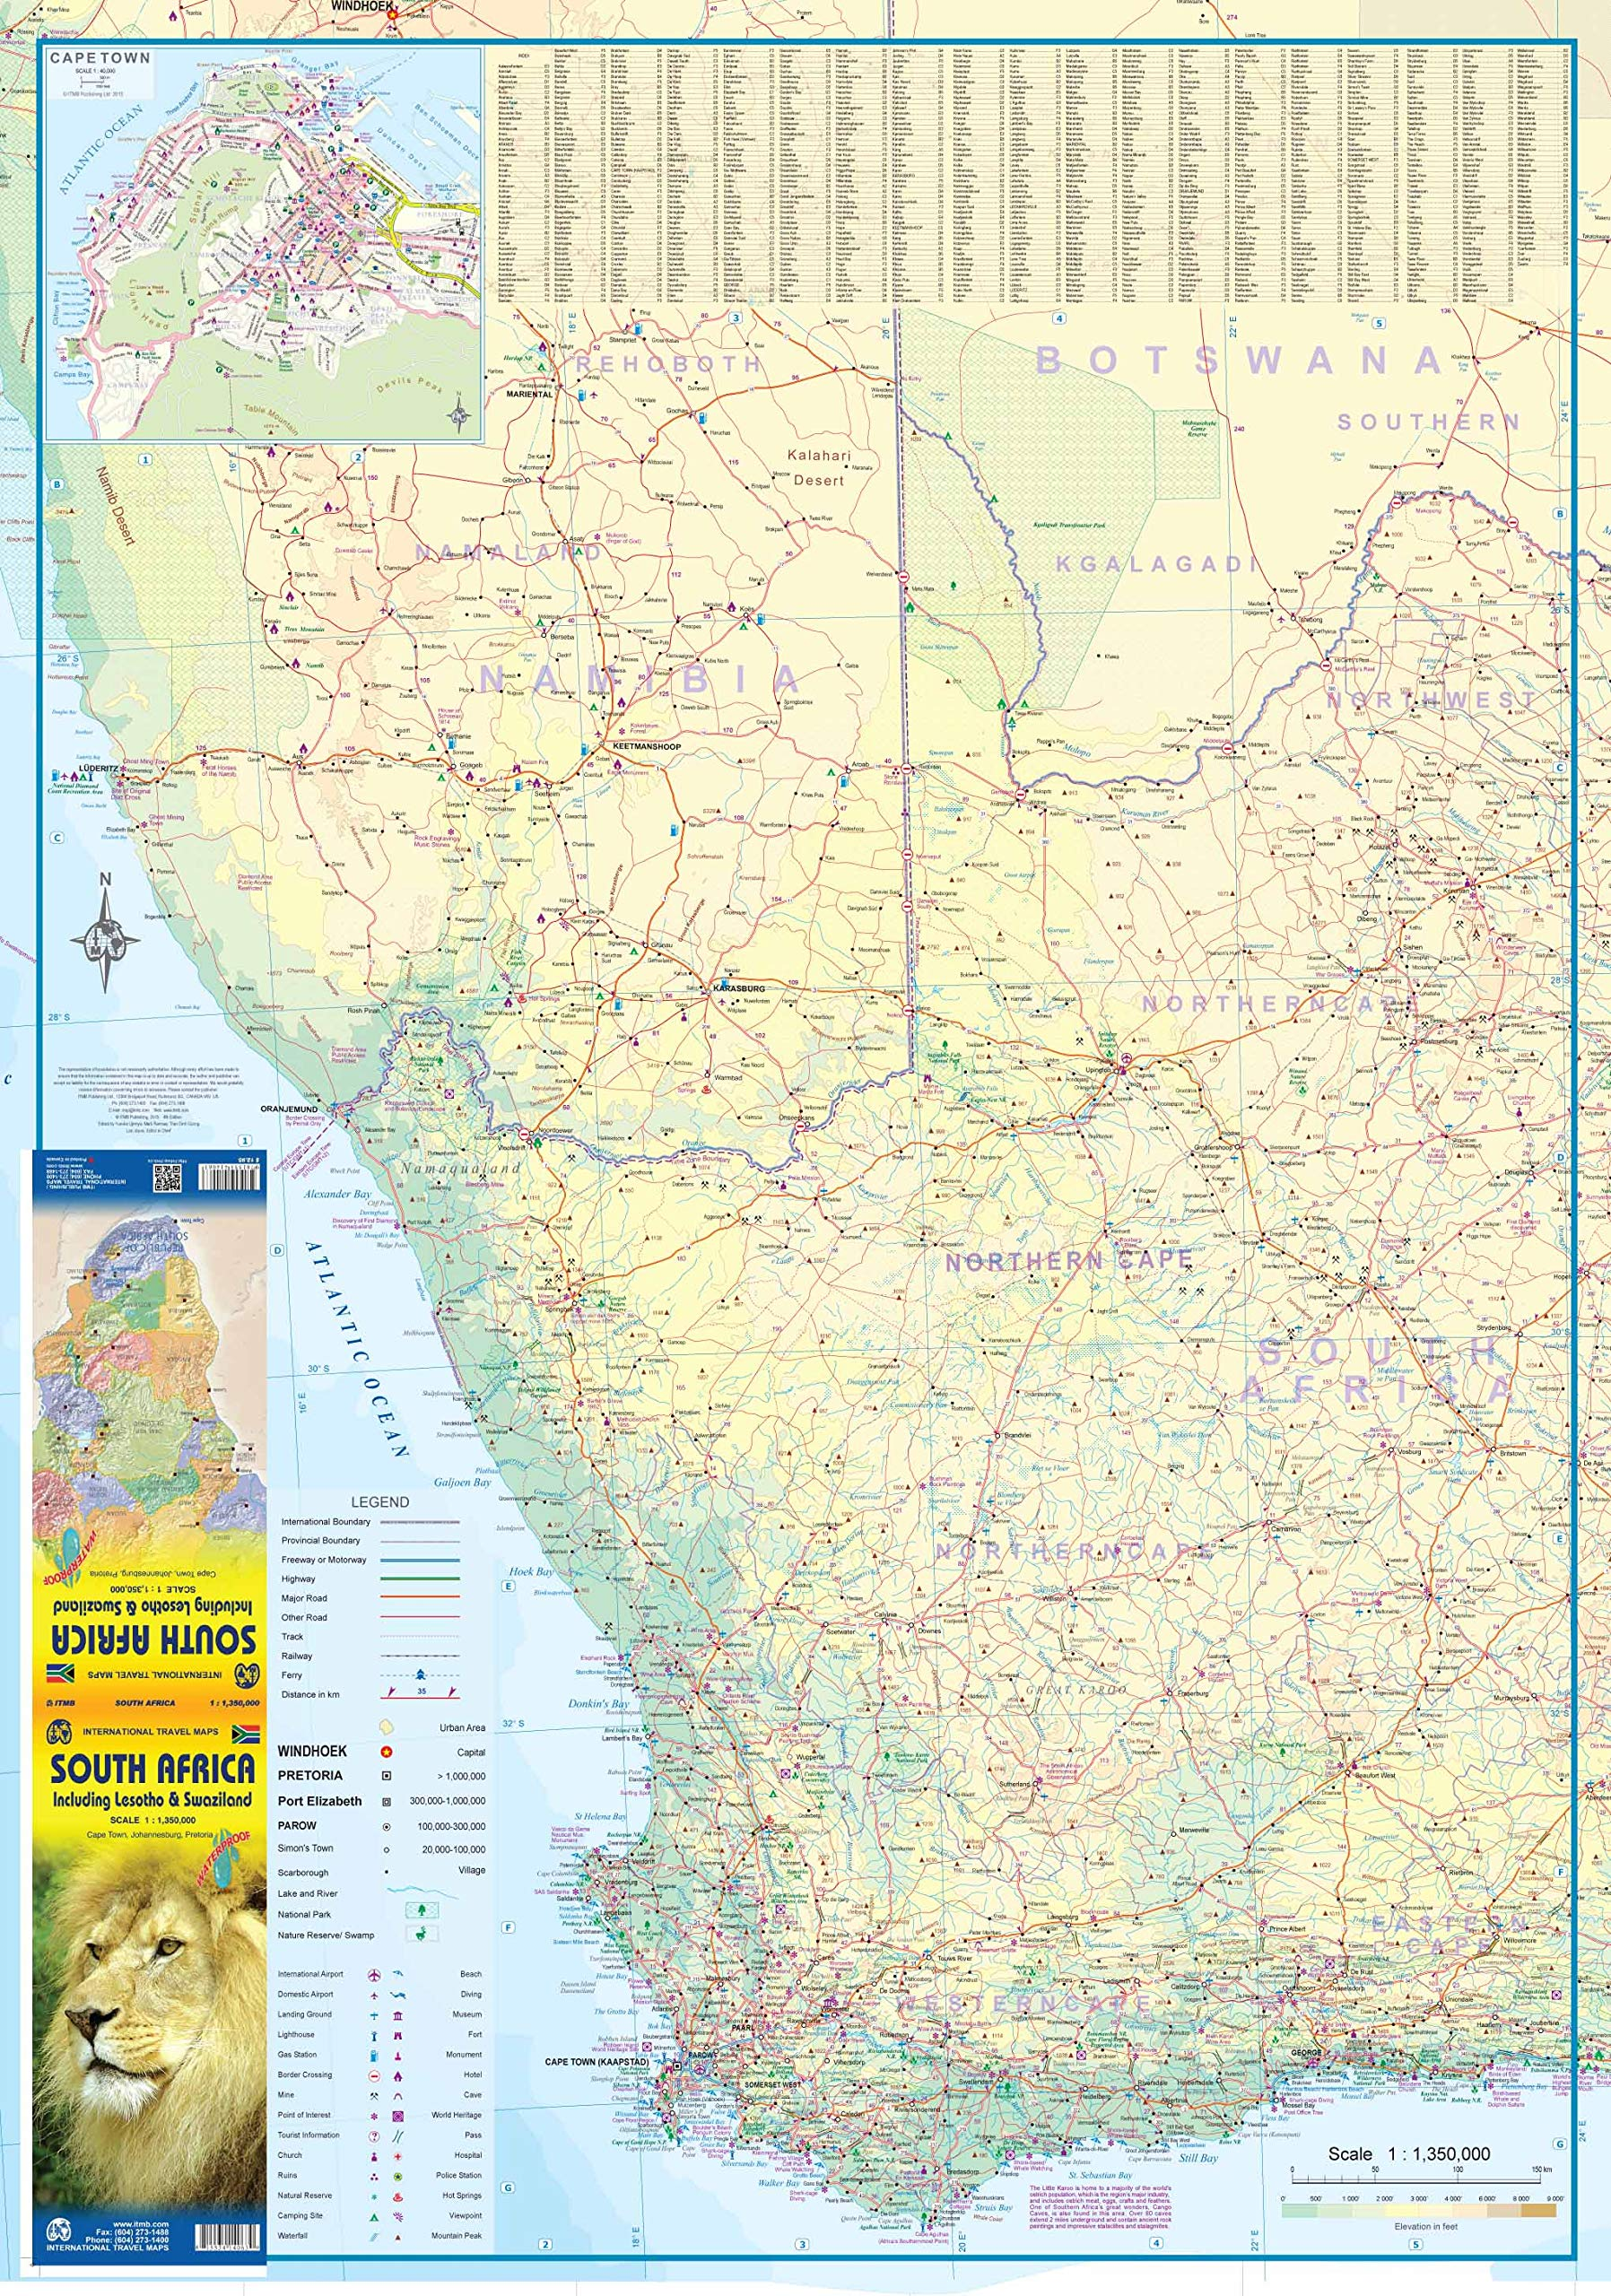 South Africa ITM Travel Map 5e